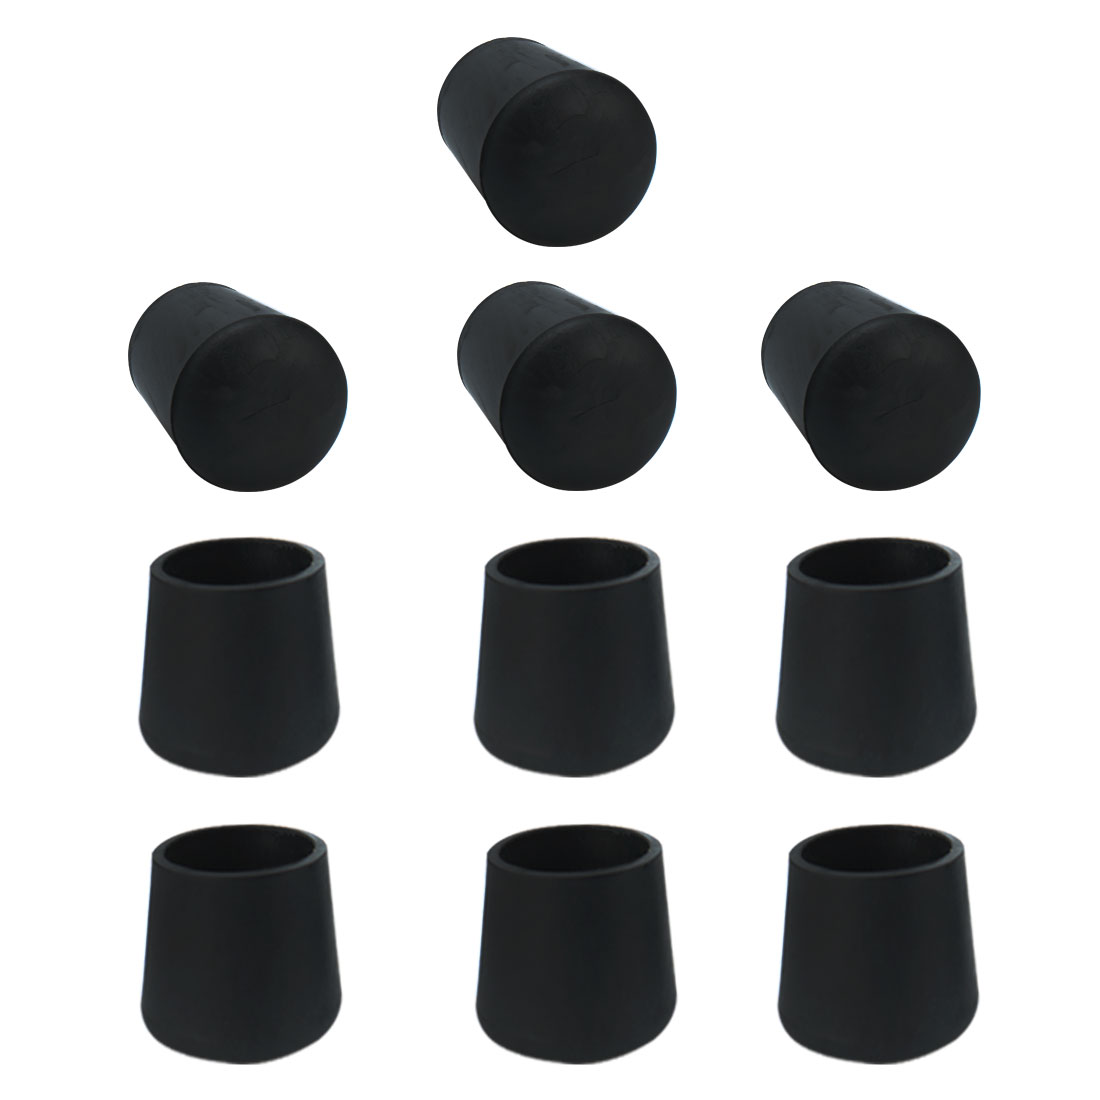 10pcs 15mm Hole Dia Rubber Cone Design Cover Furniture Table Chair Leg Protector Feet Pads Tip